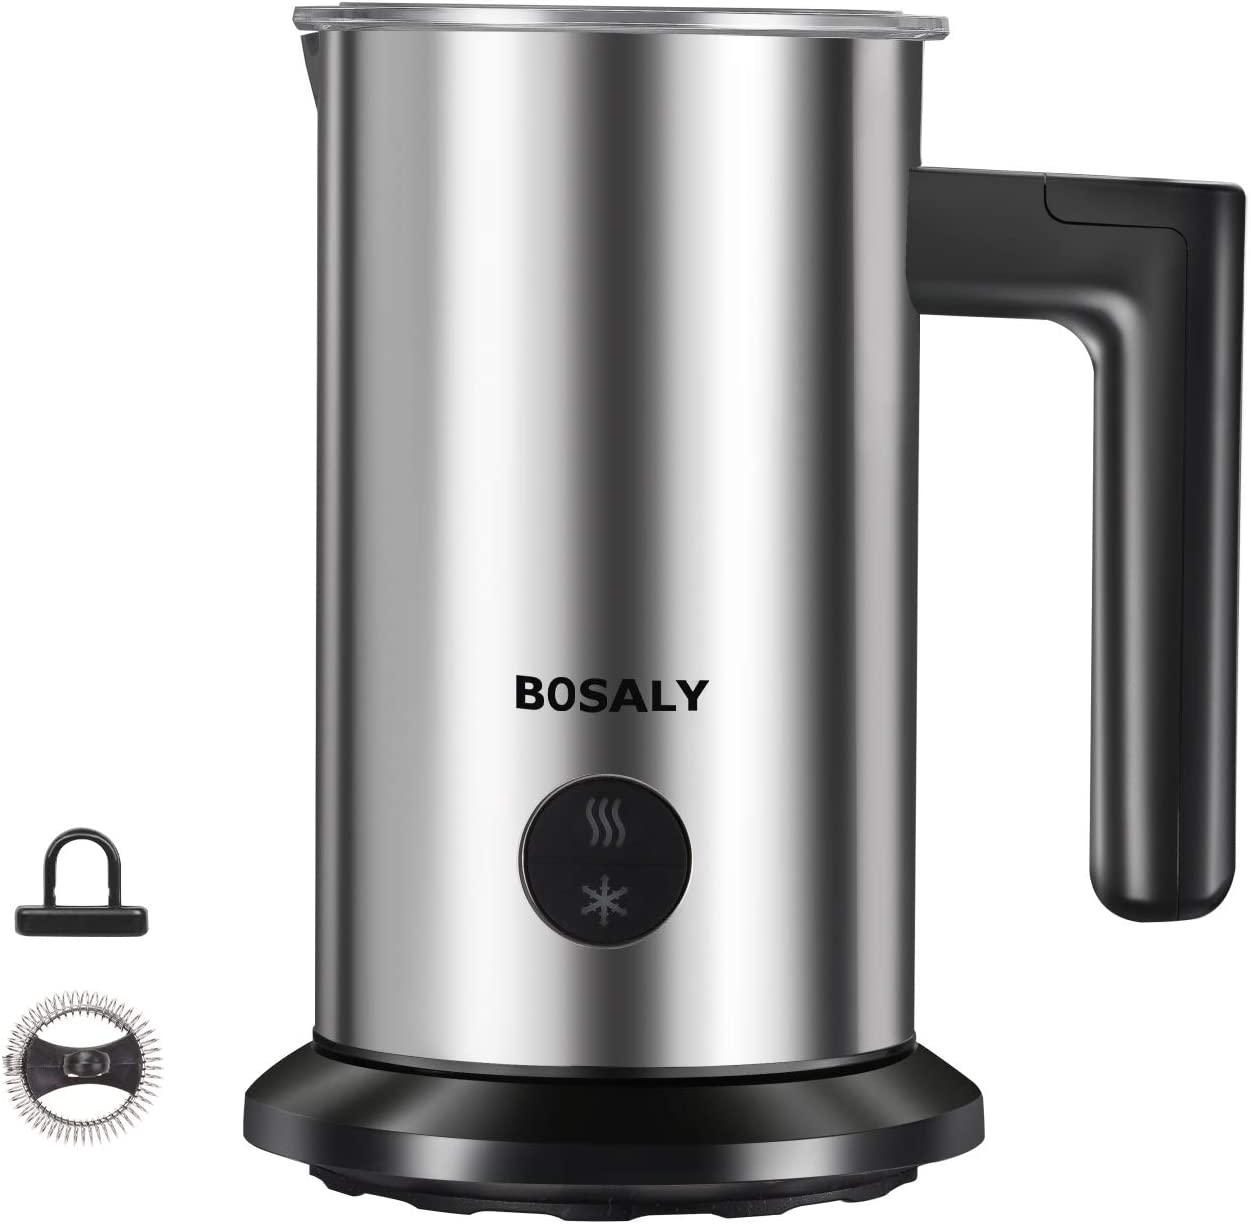 BOSALY Milk frother, Electric Milk Frother,Automatic Hot Cold Milk Maker, Milk Foamer Frother, Milk Steamer Frother Heater for Lattes, Coffee Espresso, Hot Chocolates, Cappuccinos (Silver)